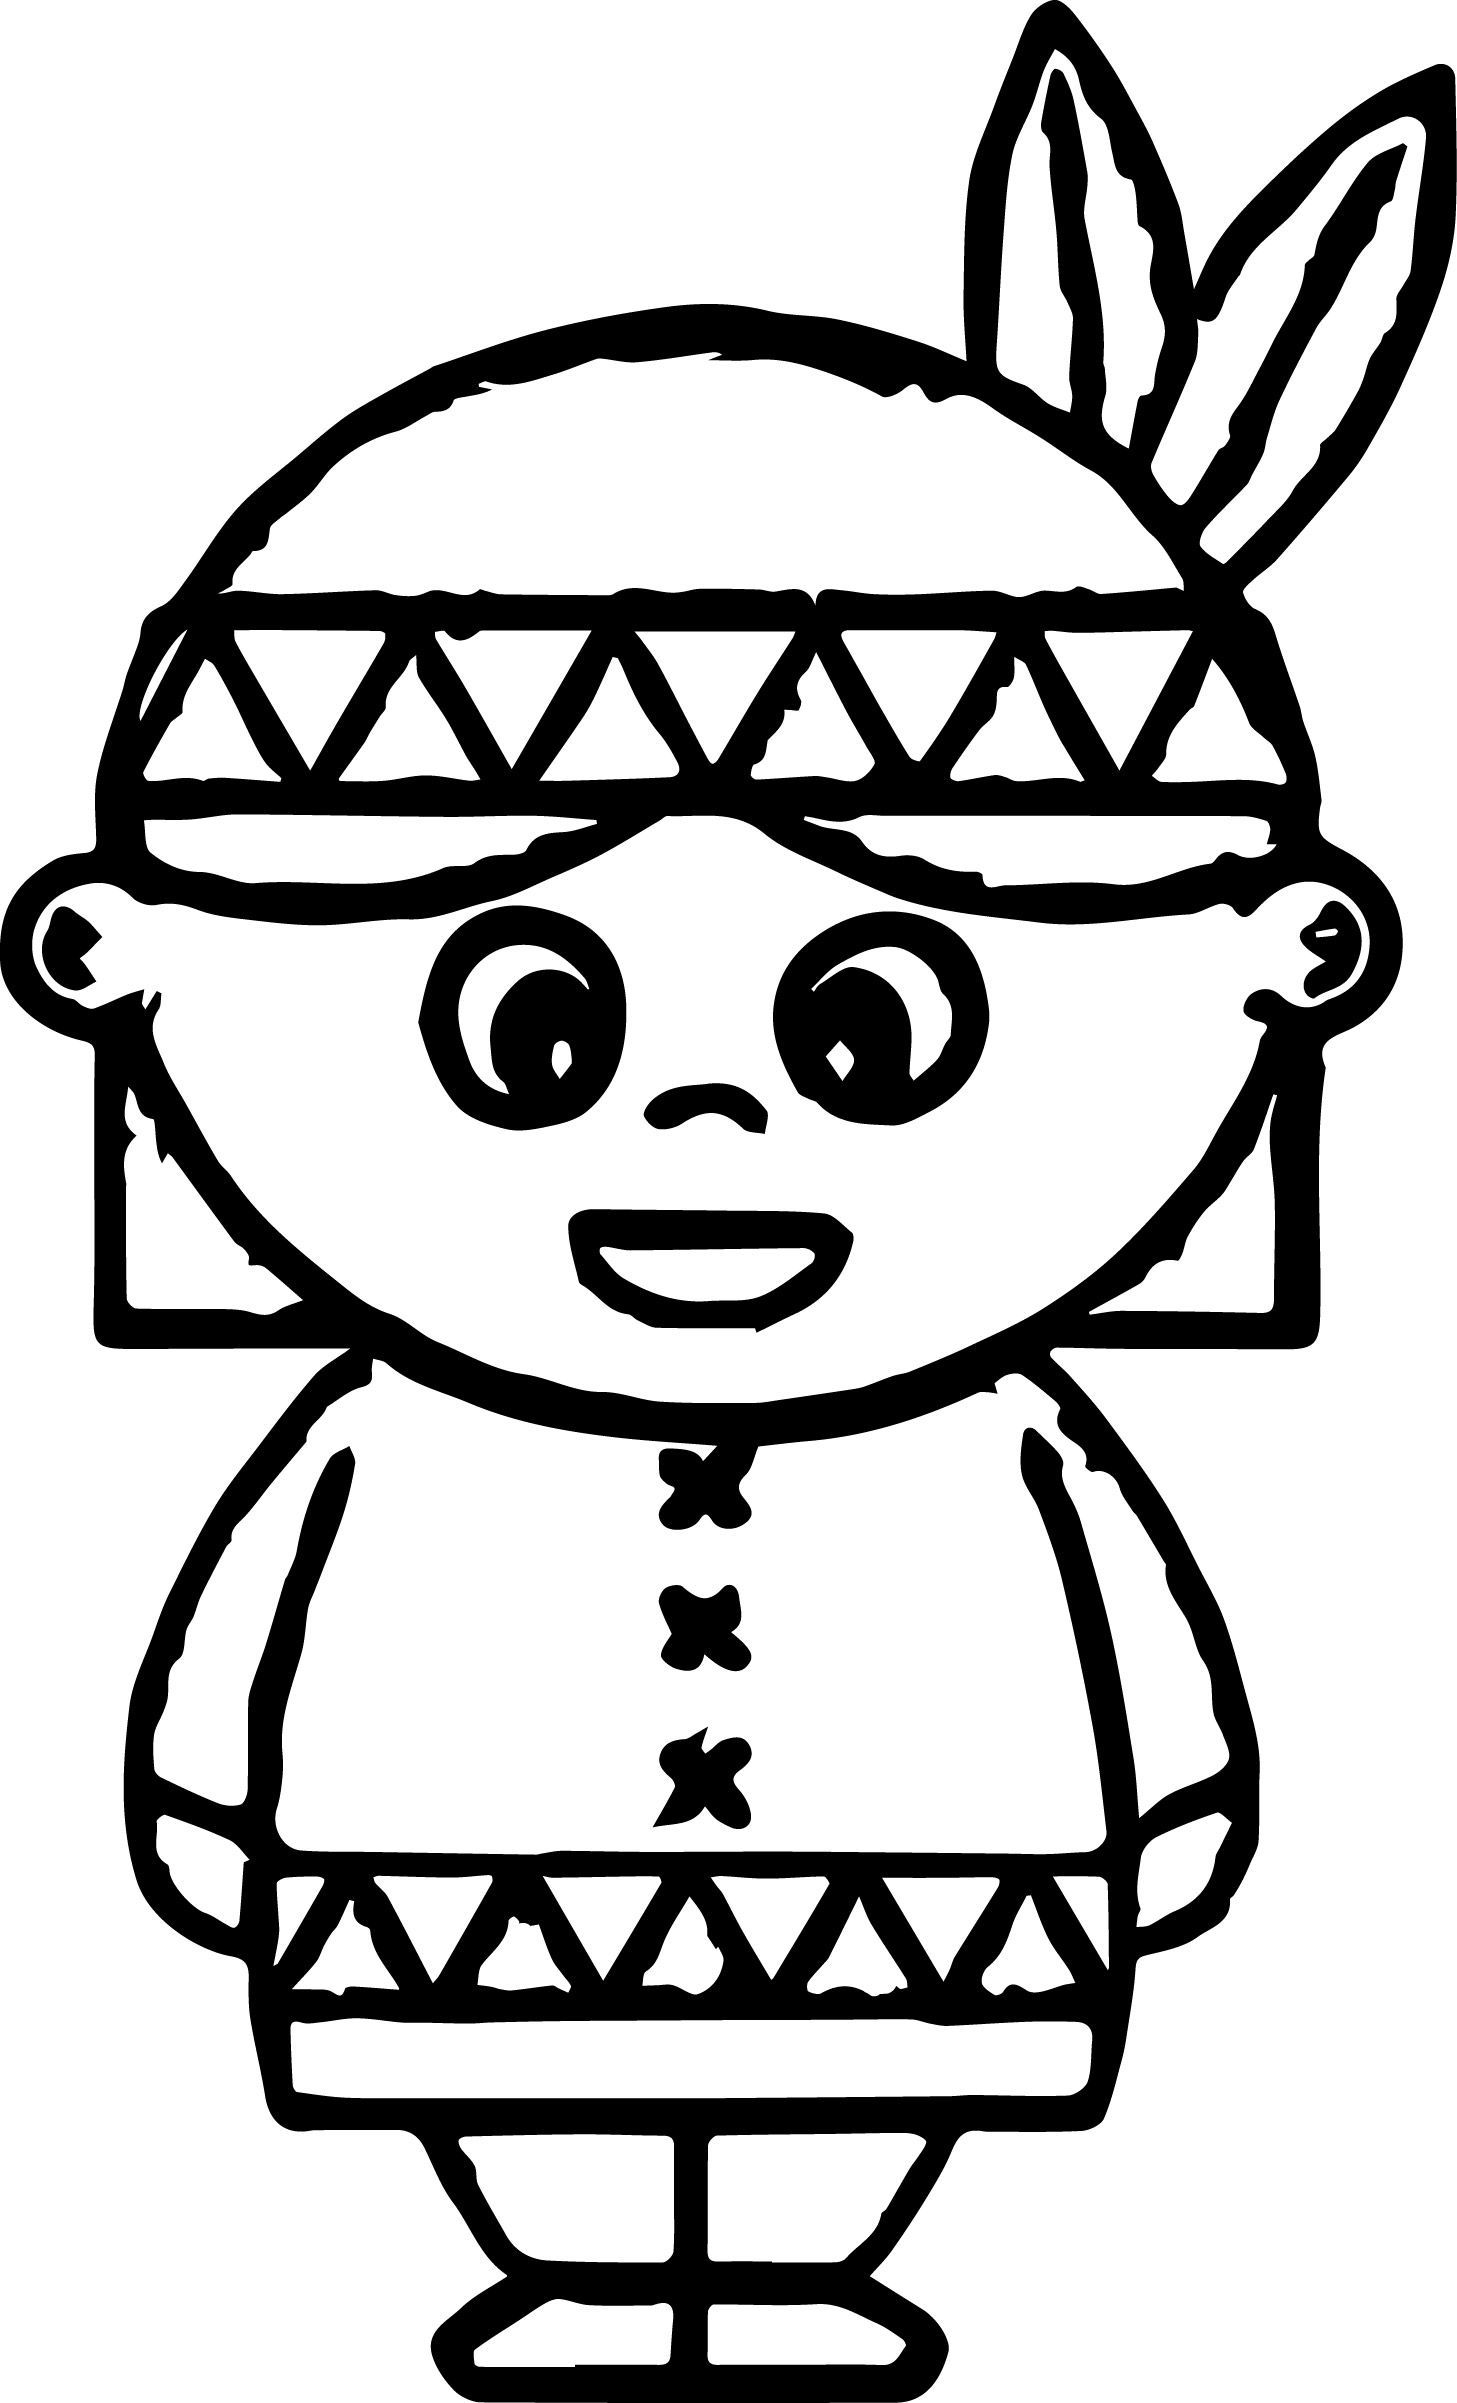 Coloring pages from india ~ American Indian Coloring Pages | wecoloringpage | Coloring ...